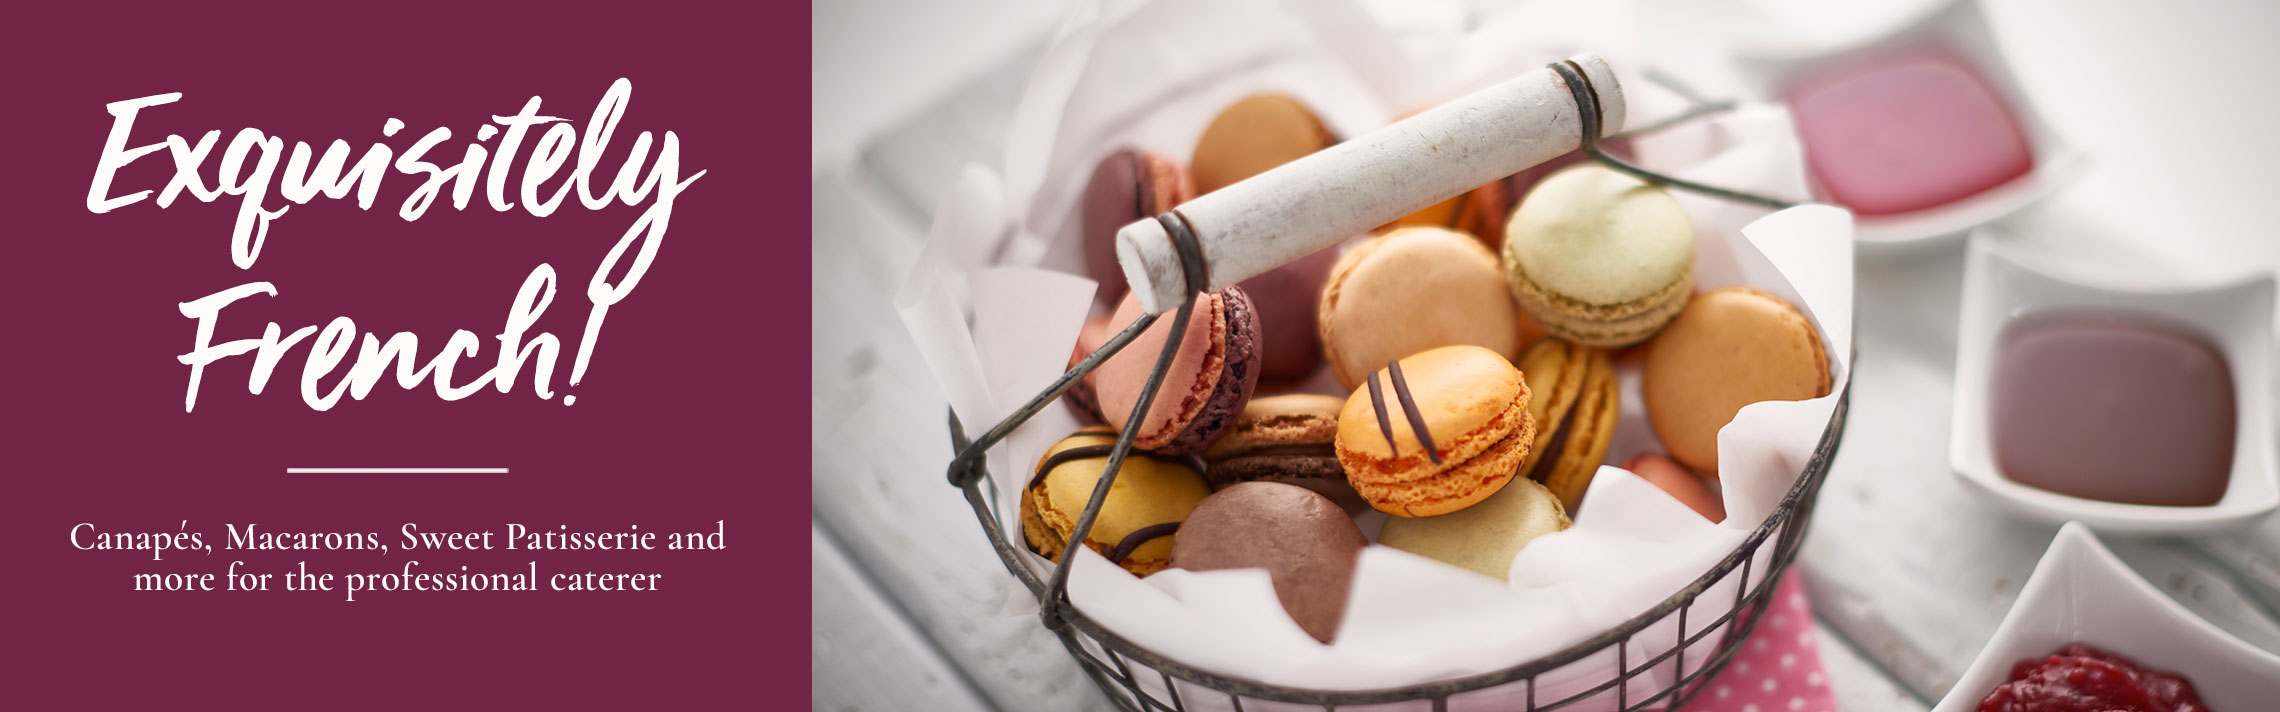 Canapes Supplier - Tipiak Foodservice - Canapes, Macarons, Sweet Patisserie